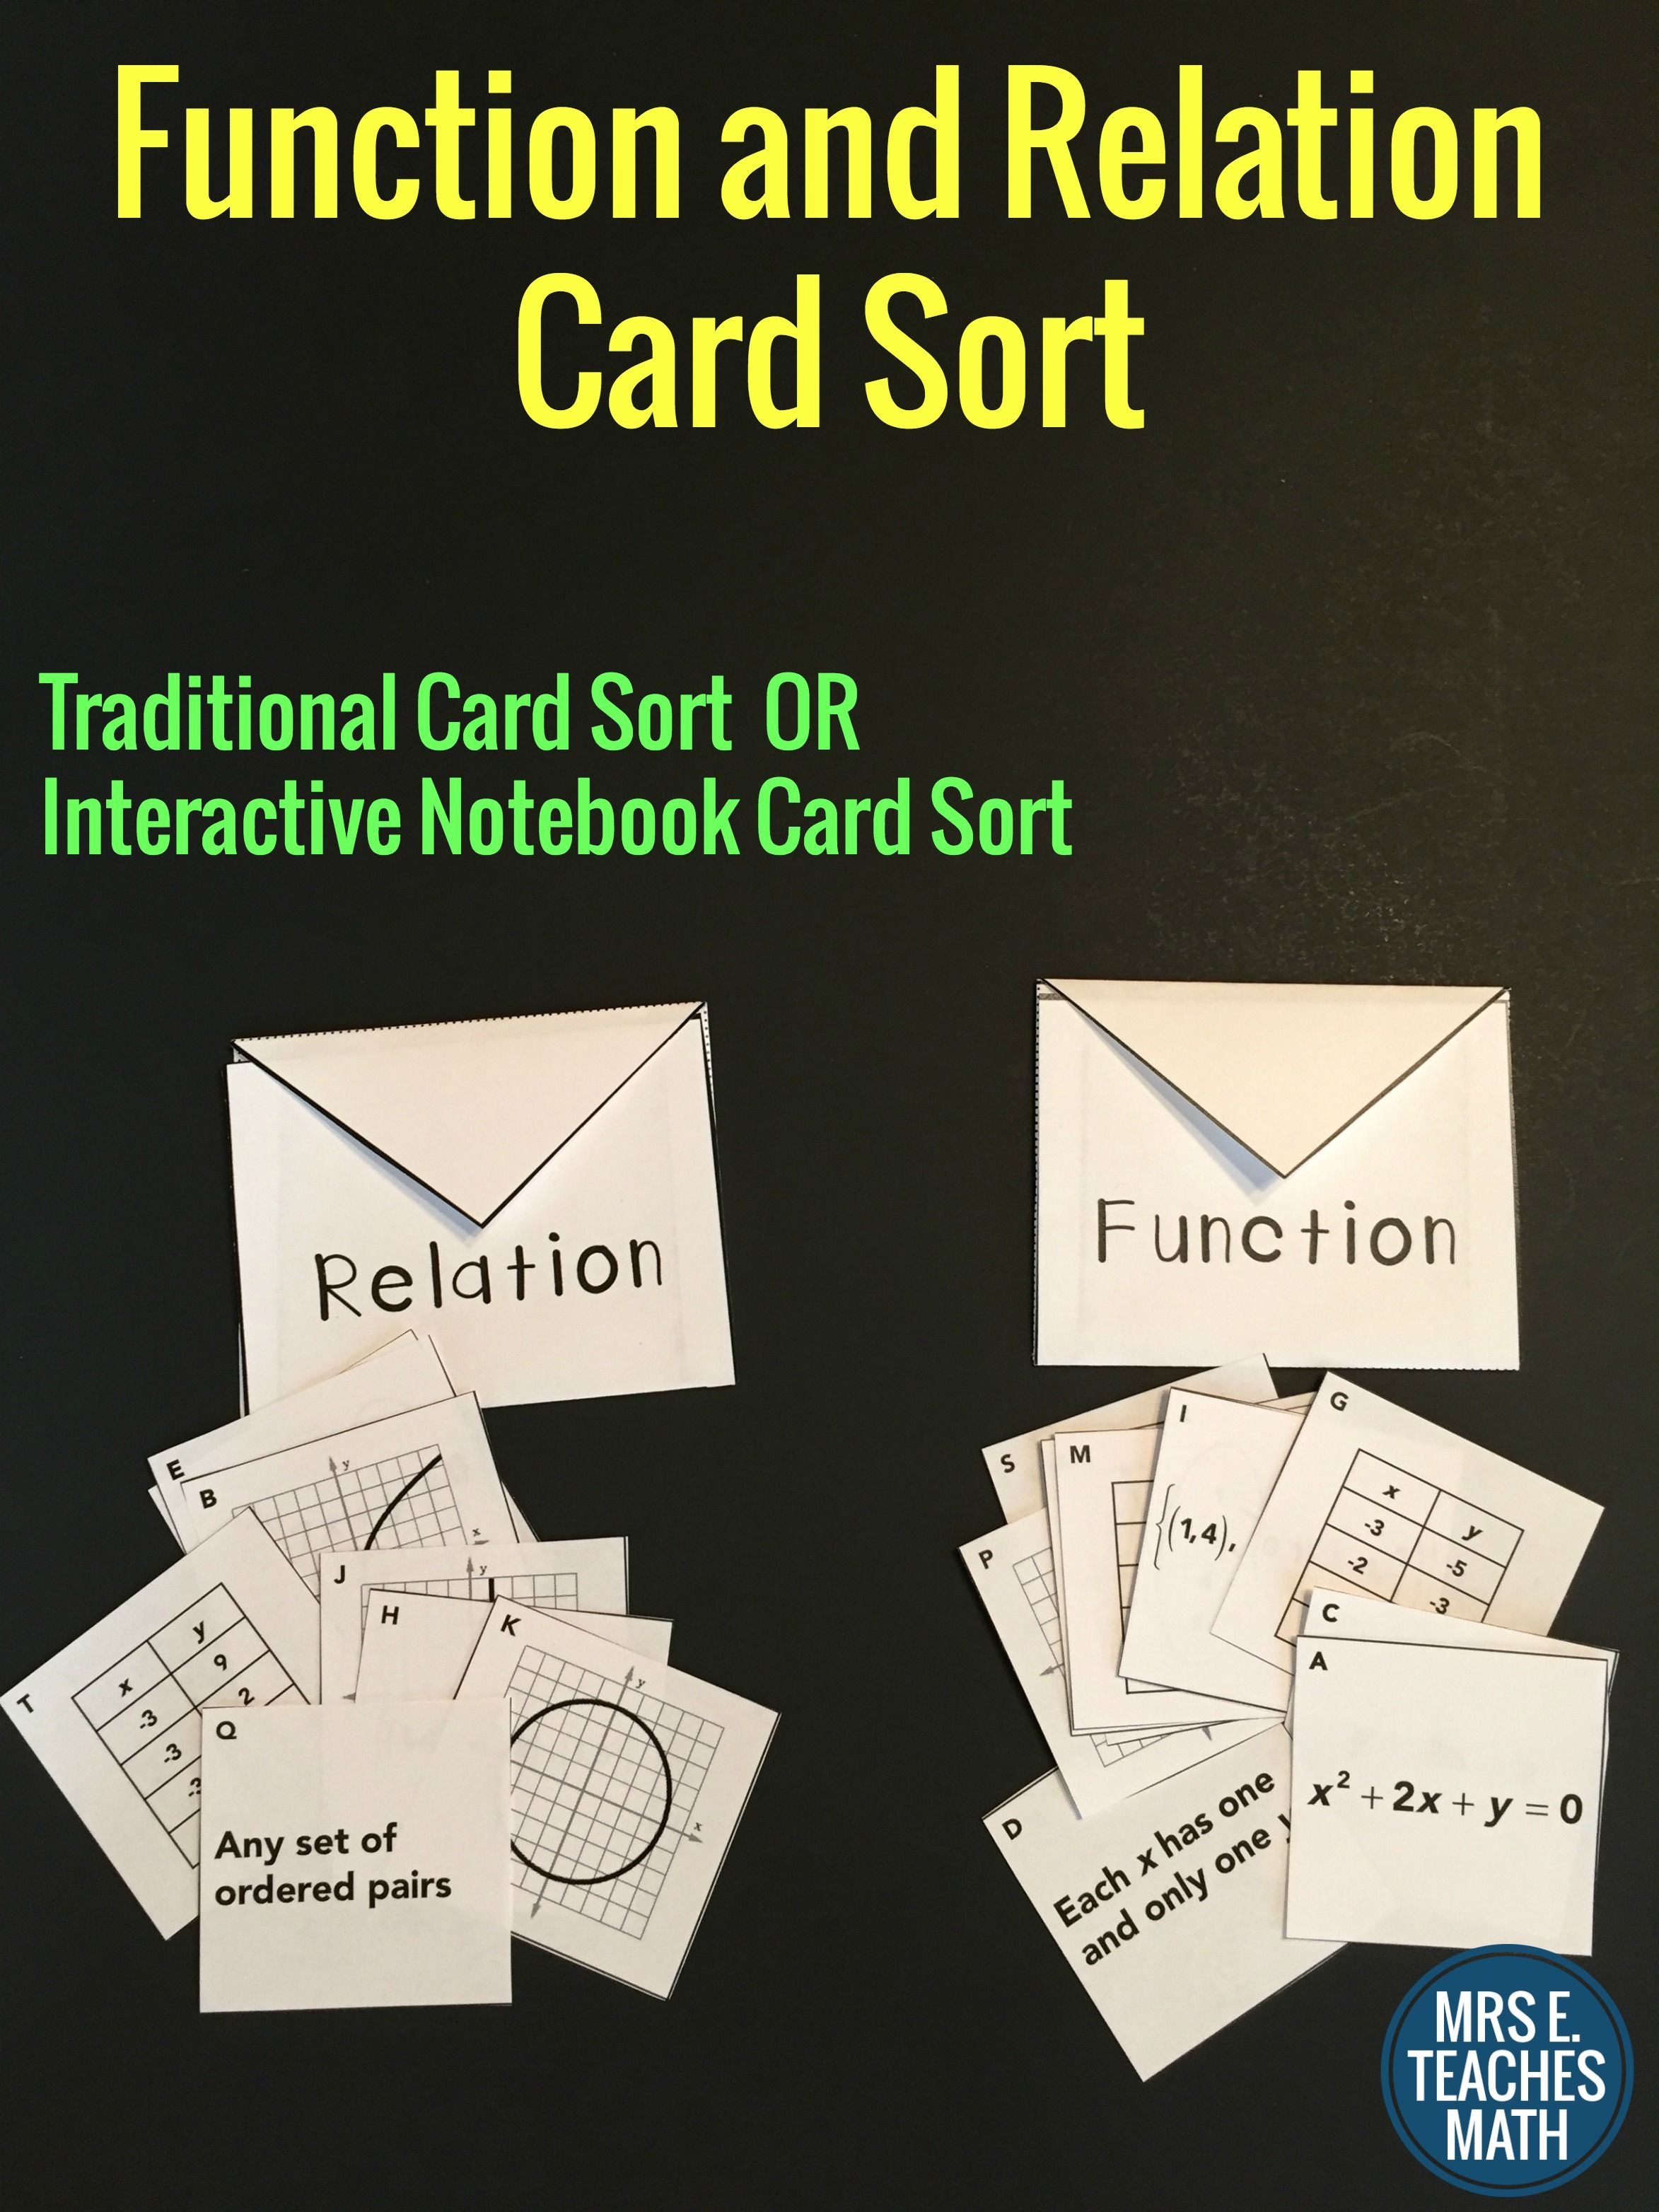 Functions And Relations Card Sort With Images